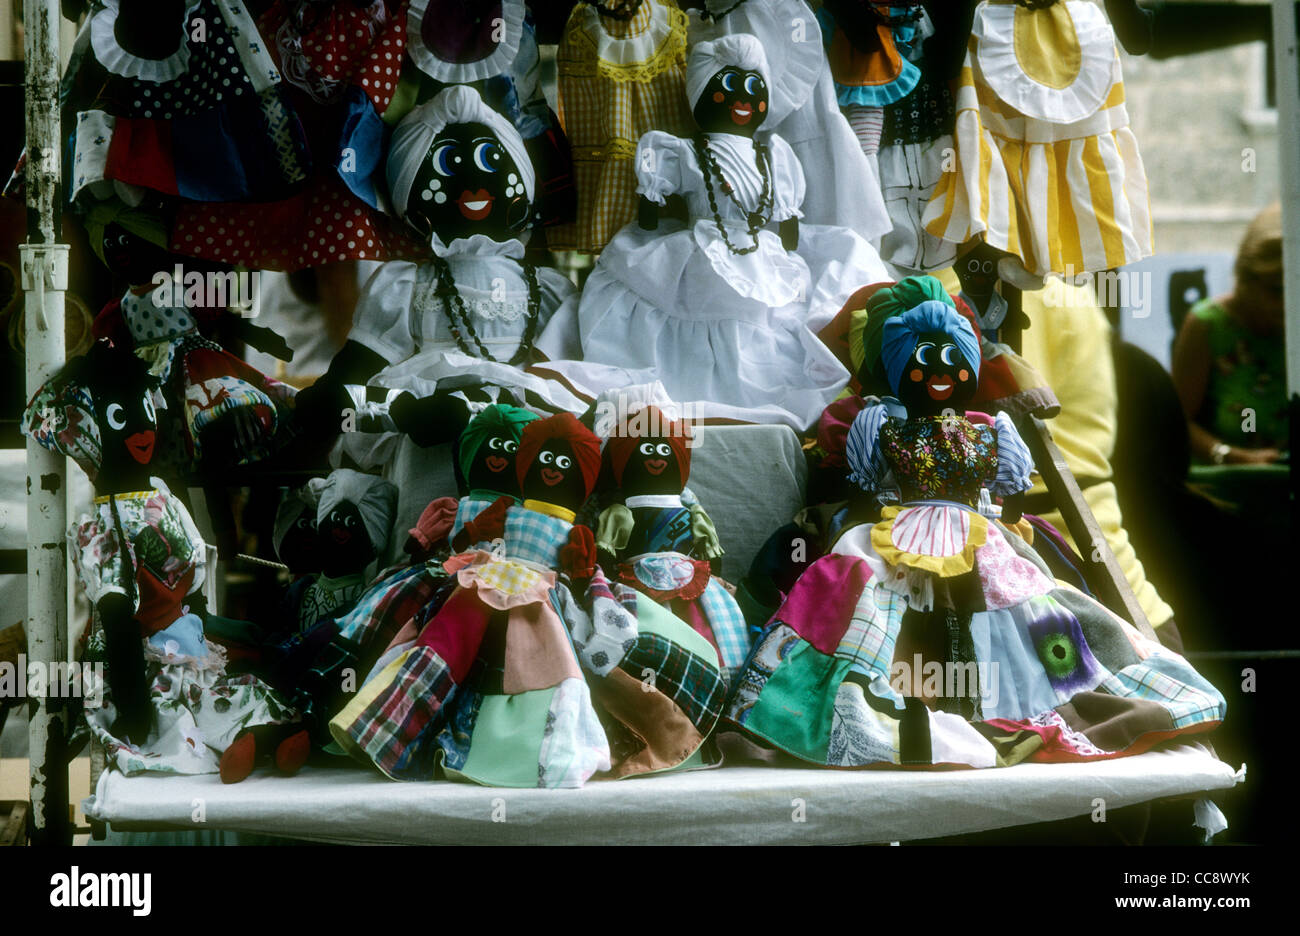 Santeria Doll Stock Photos & Santeria Doll Stock Images - Alamy